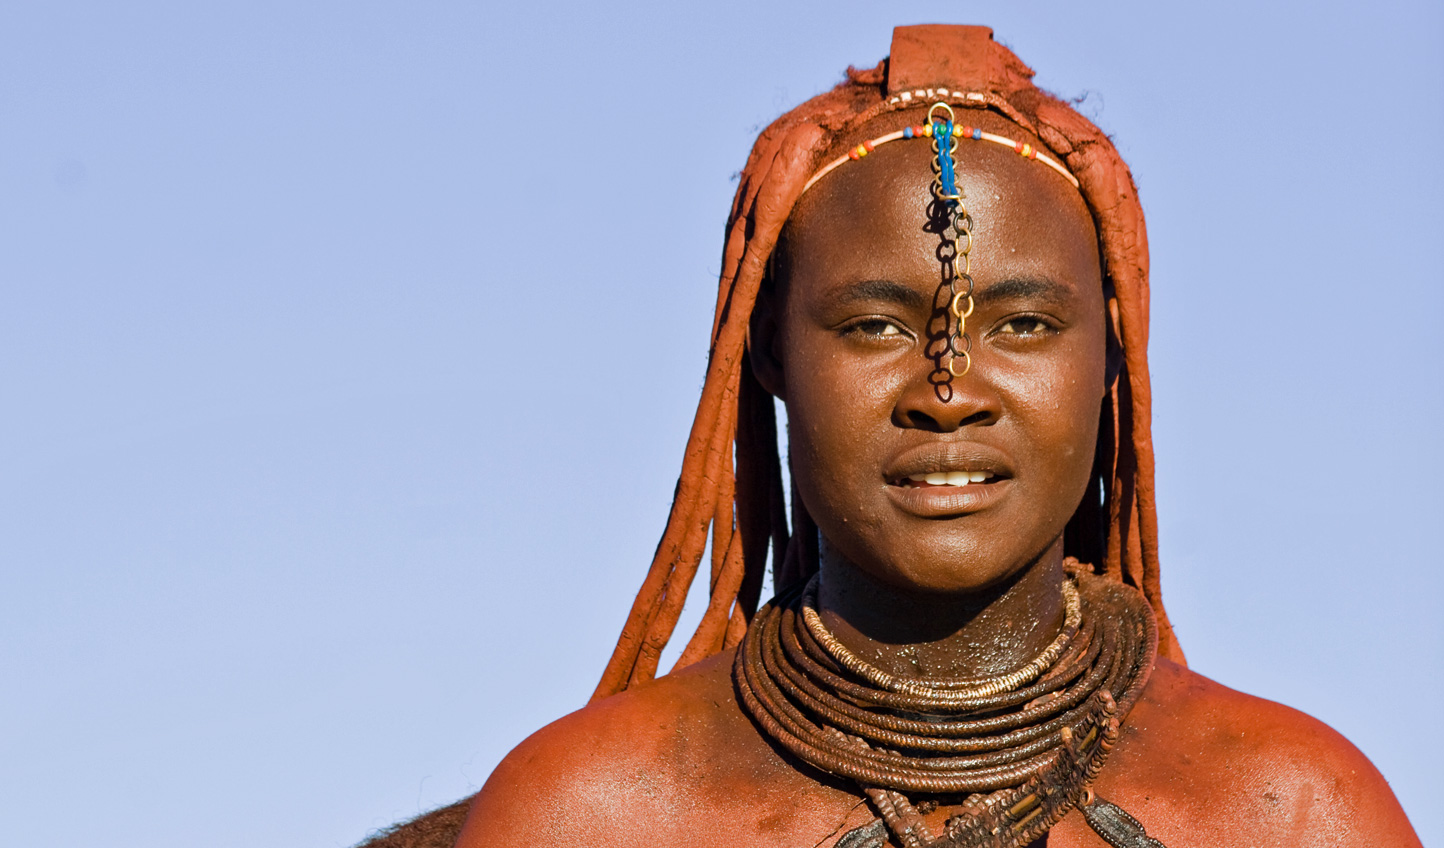 Connect with the local Himba tribe